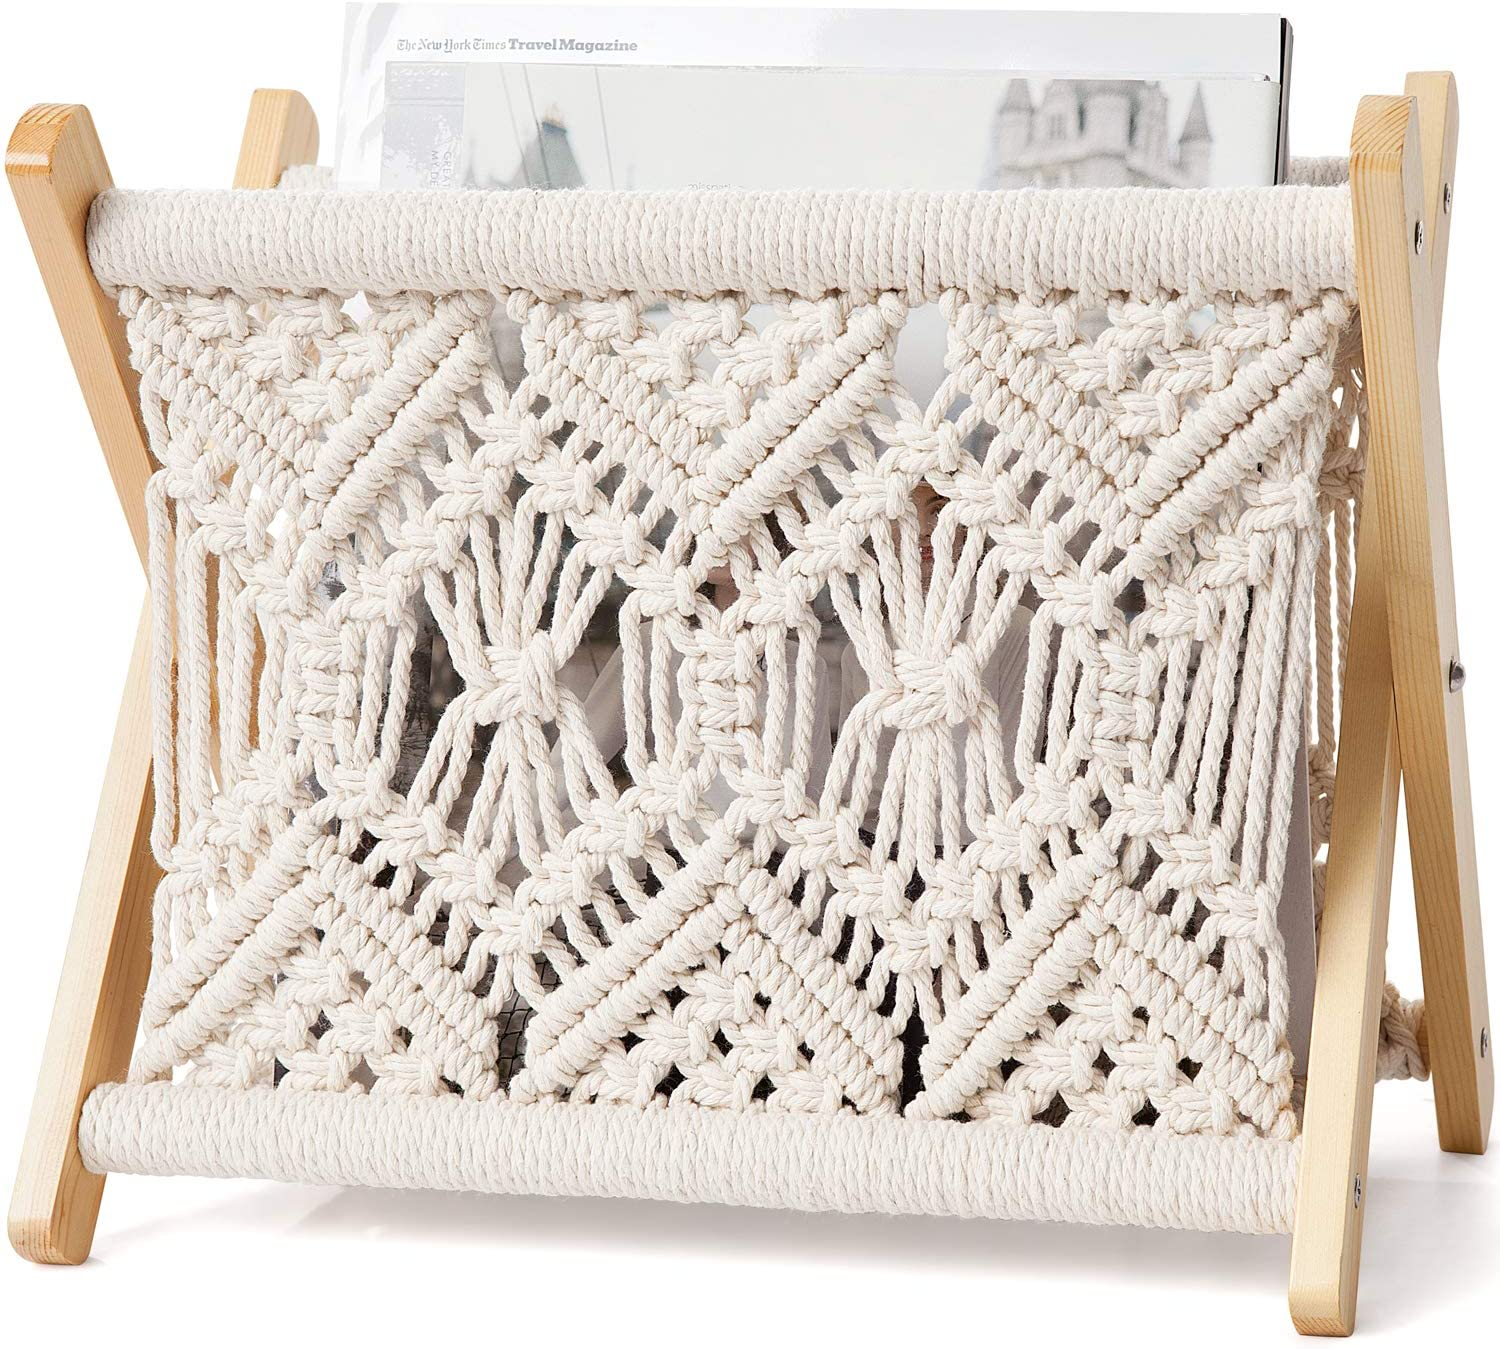 Mkono Macrame Magazine Rack Small Boho Magazine Holder Storage Basket Standing Rack for Books, Newspapers, Notebook, Swaddle Blanket, Living Room, Bathroom, Office, Nursery, Rustic Boho Home Decor